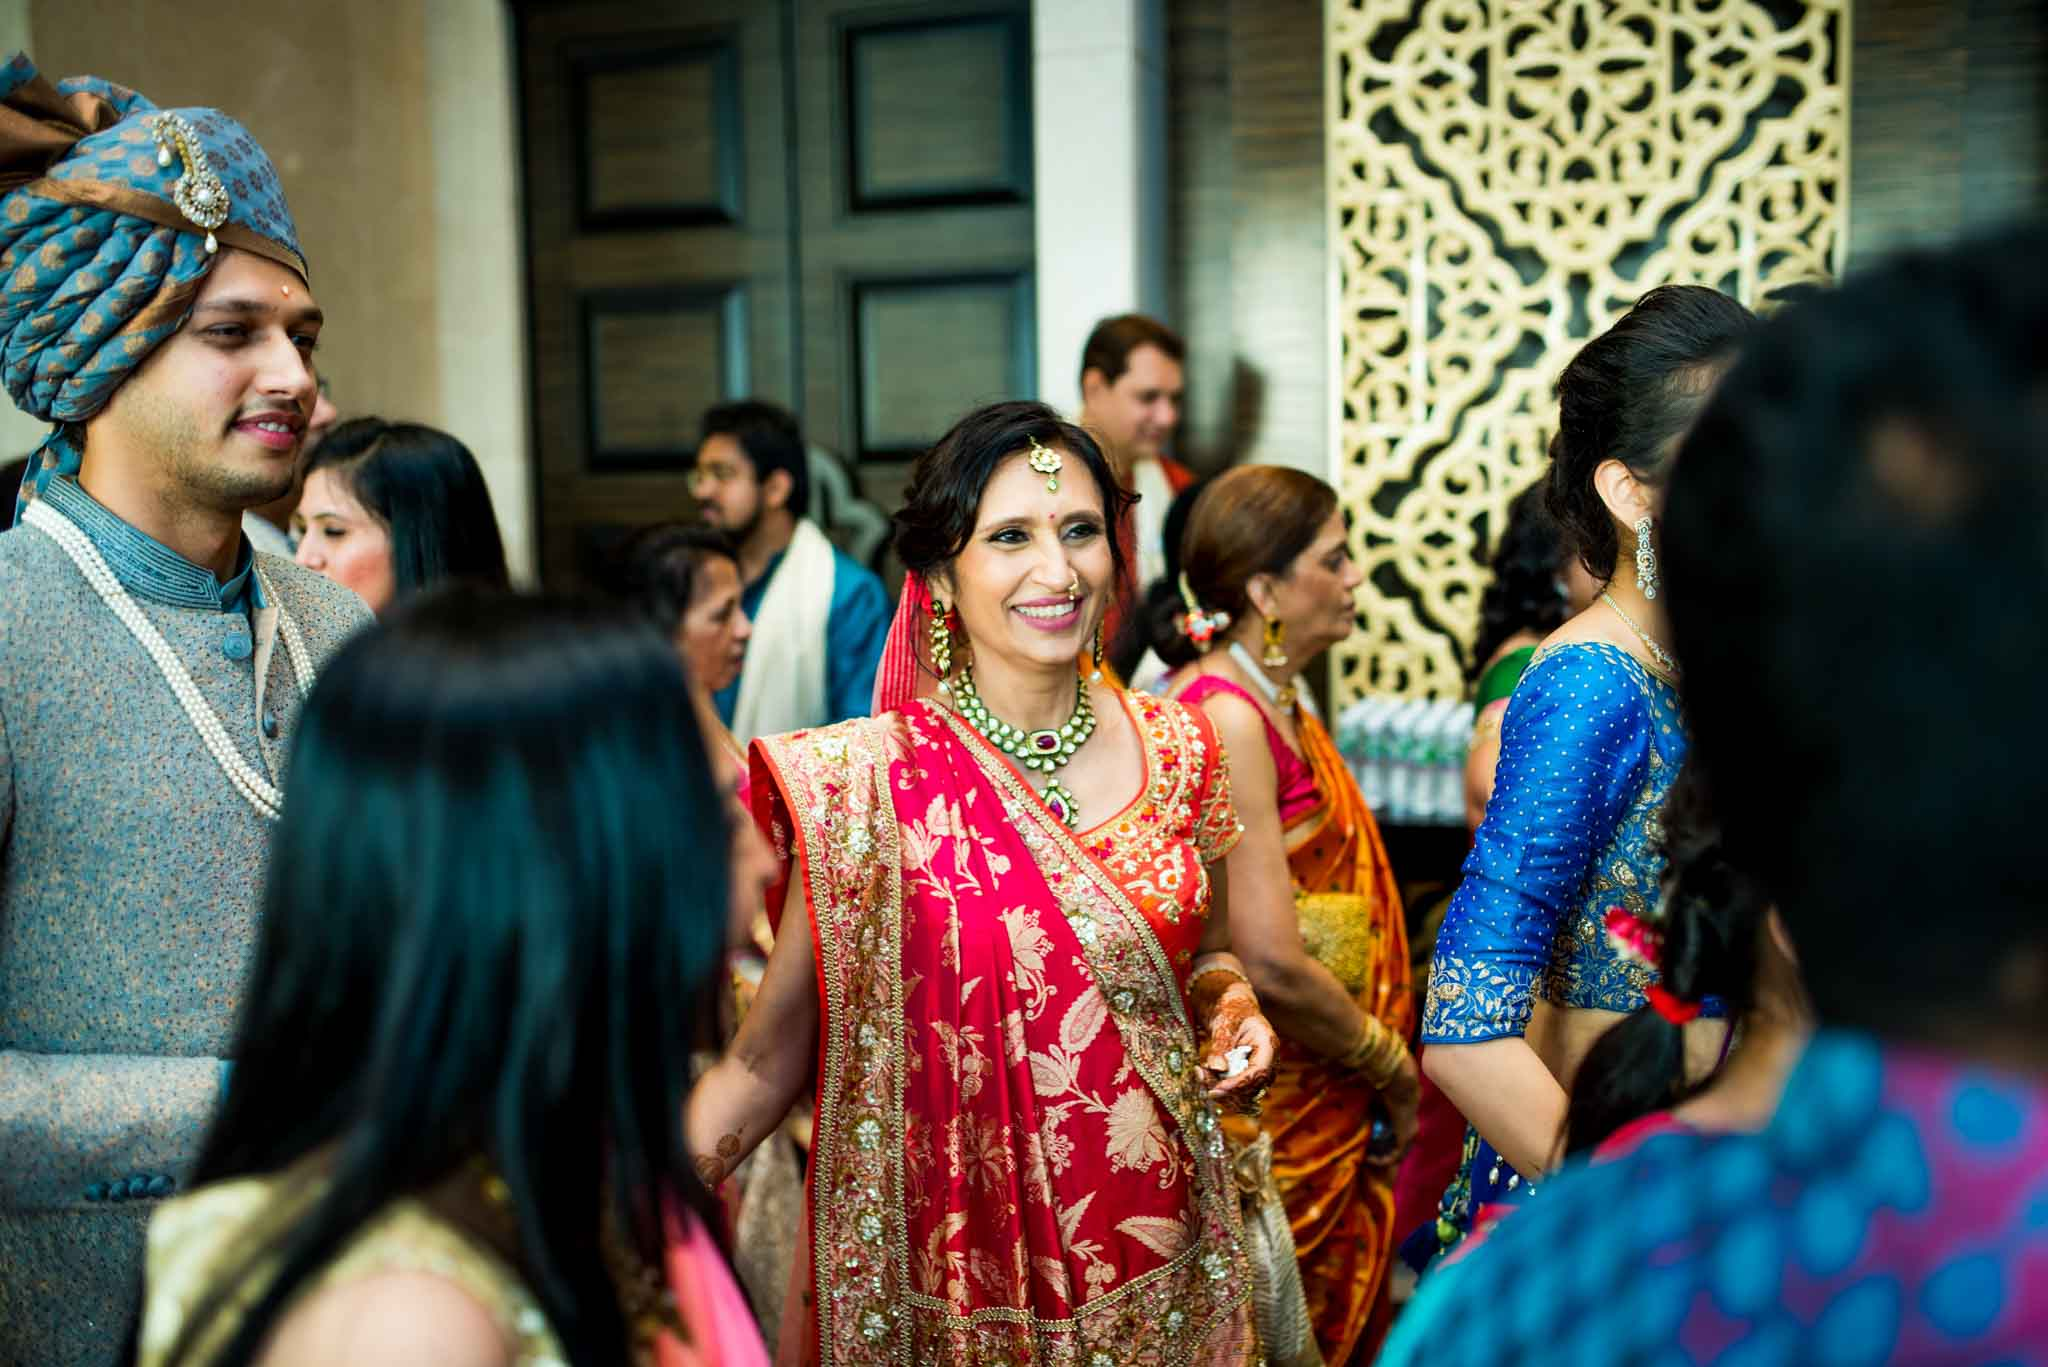 StRegis-Palladium-Mumbai-Candid-Wedding-Photography-26